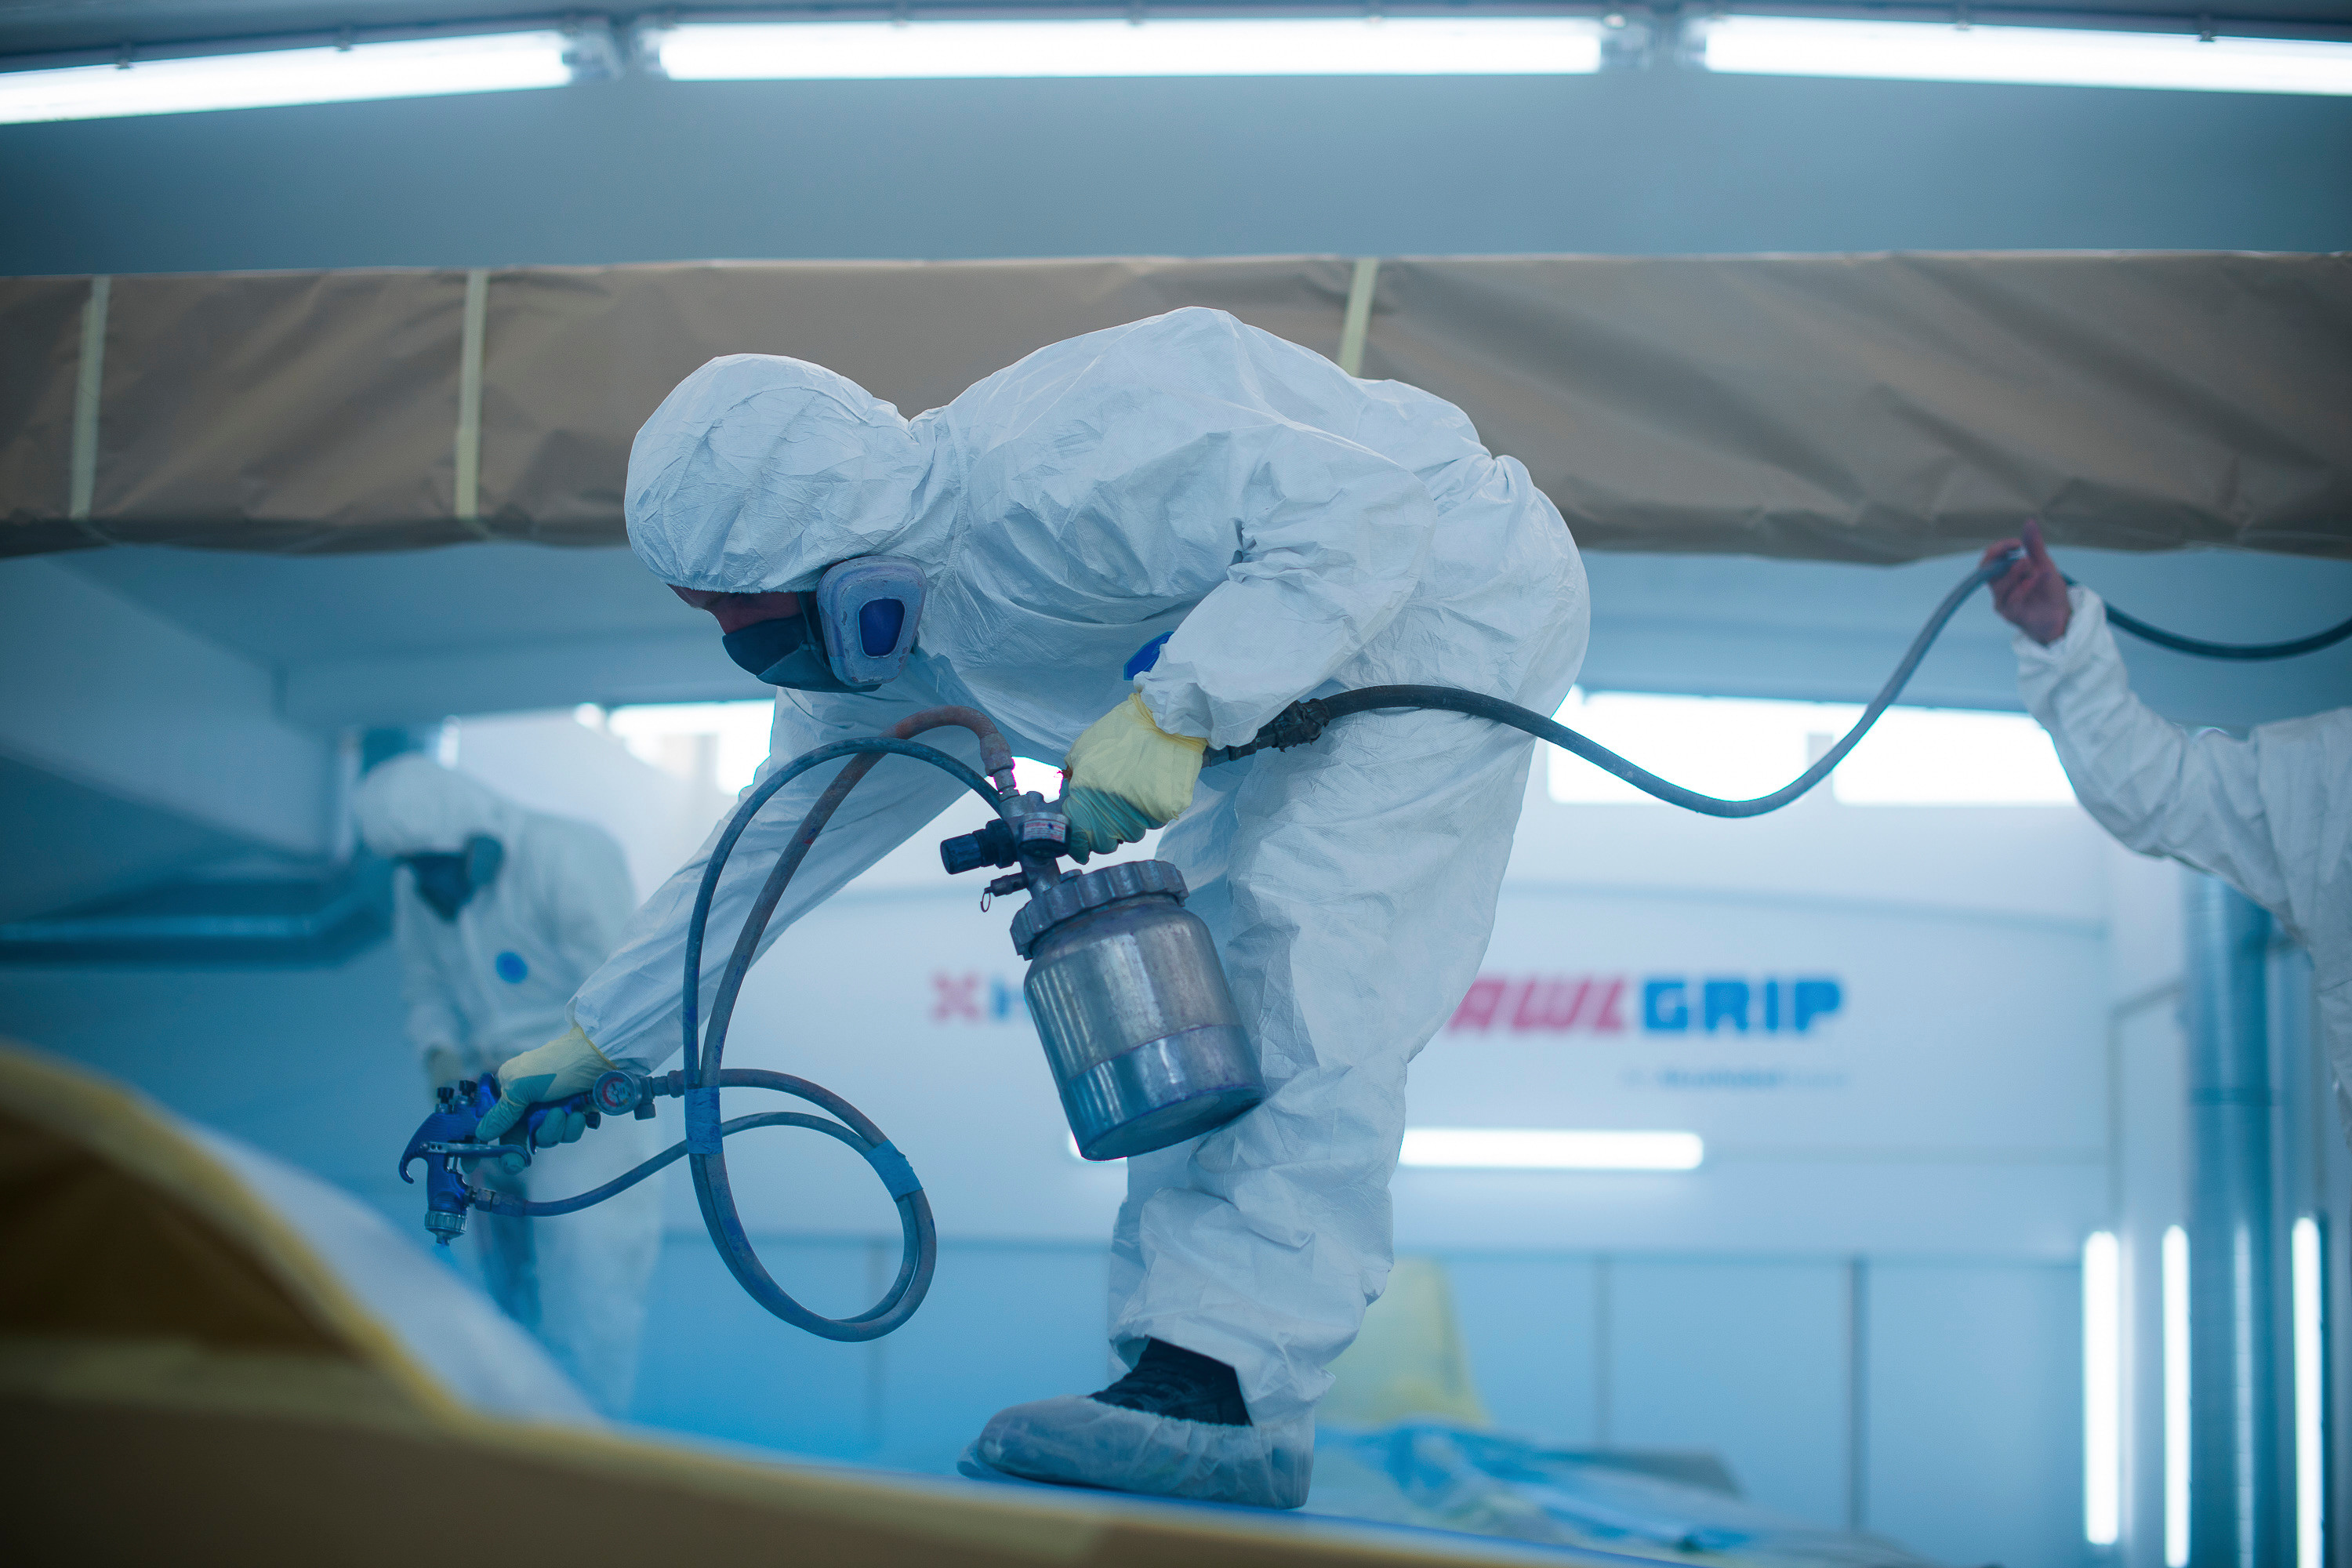 The PU clearcoat Awlgrip HDT can be used over the full range of Awlcraft SE basecoats (Source: AkzoNobel)